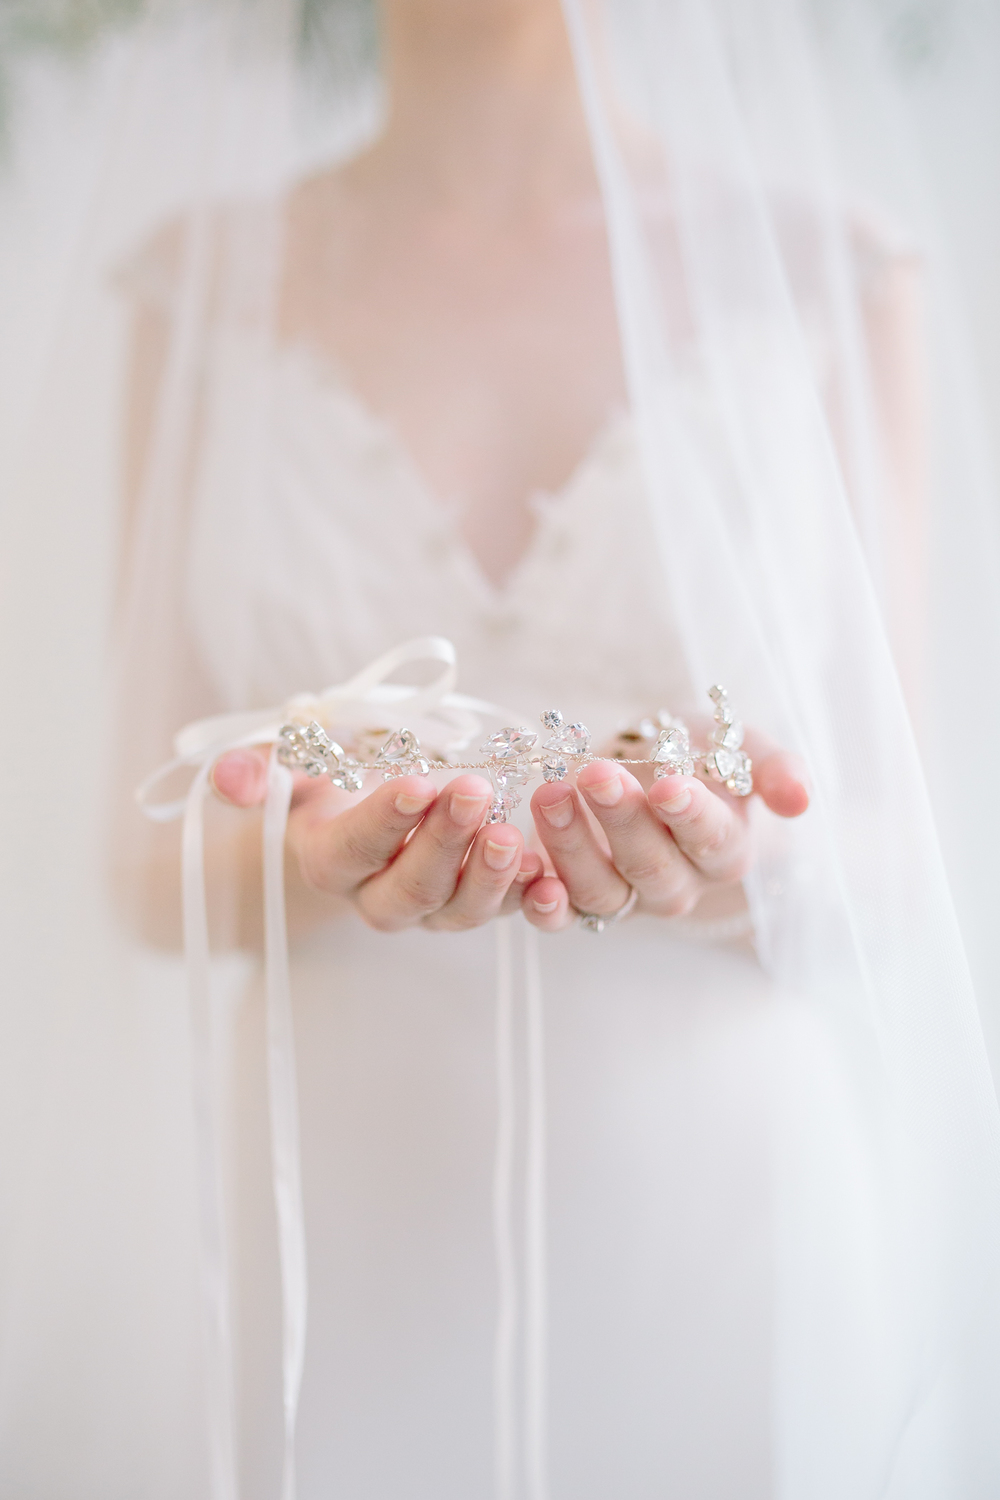 suzanne_li_photography_susan_dick_bridal_accessories-7.jpg